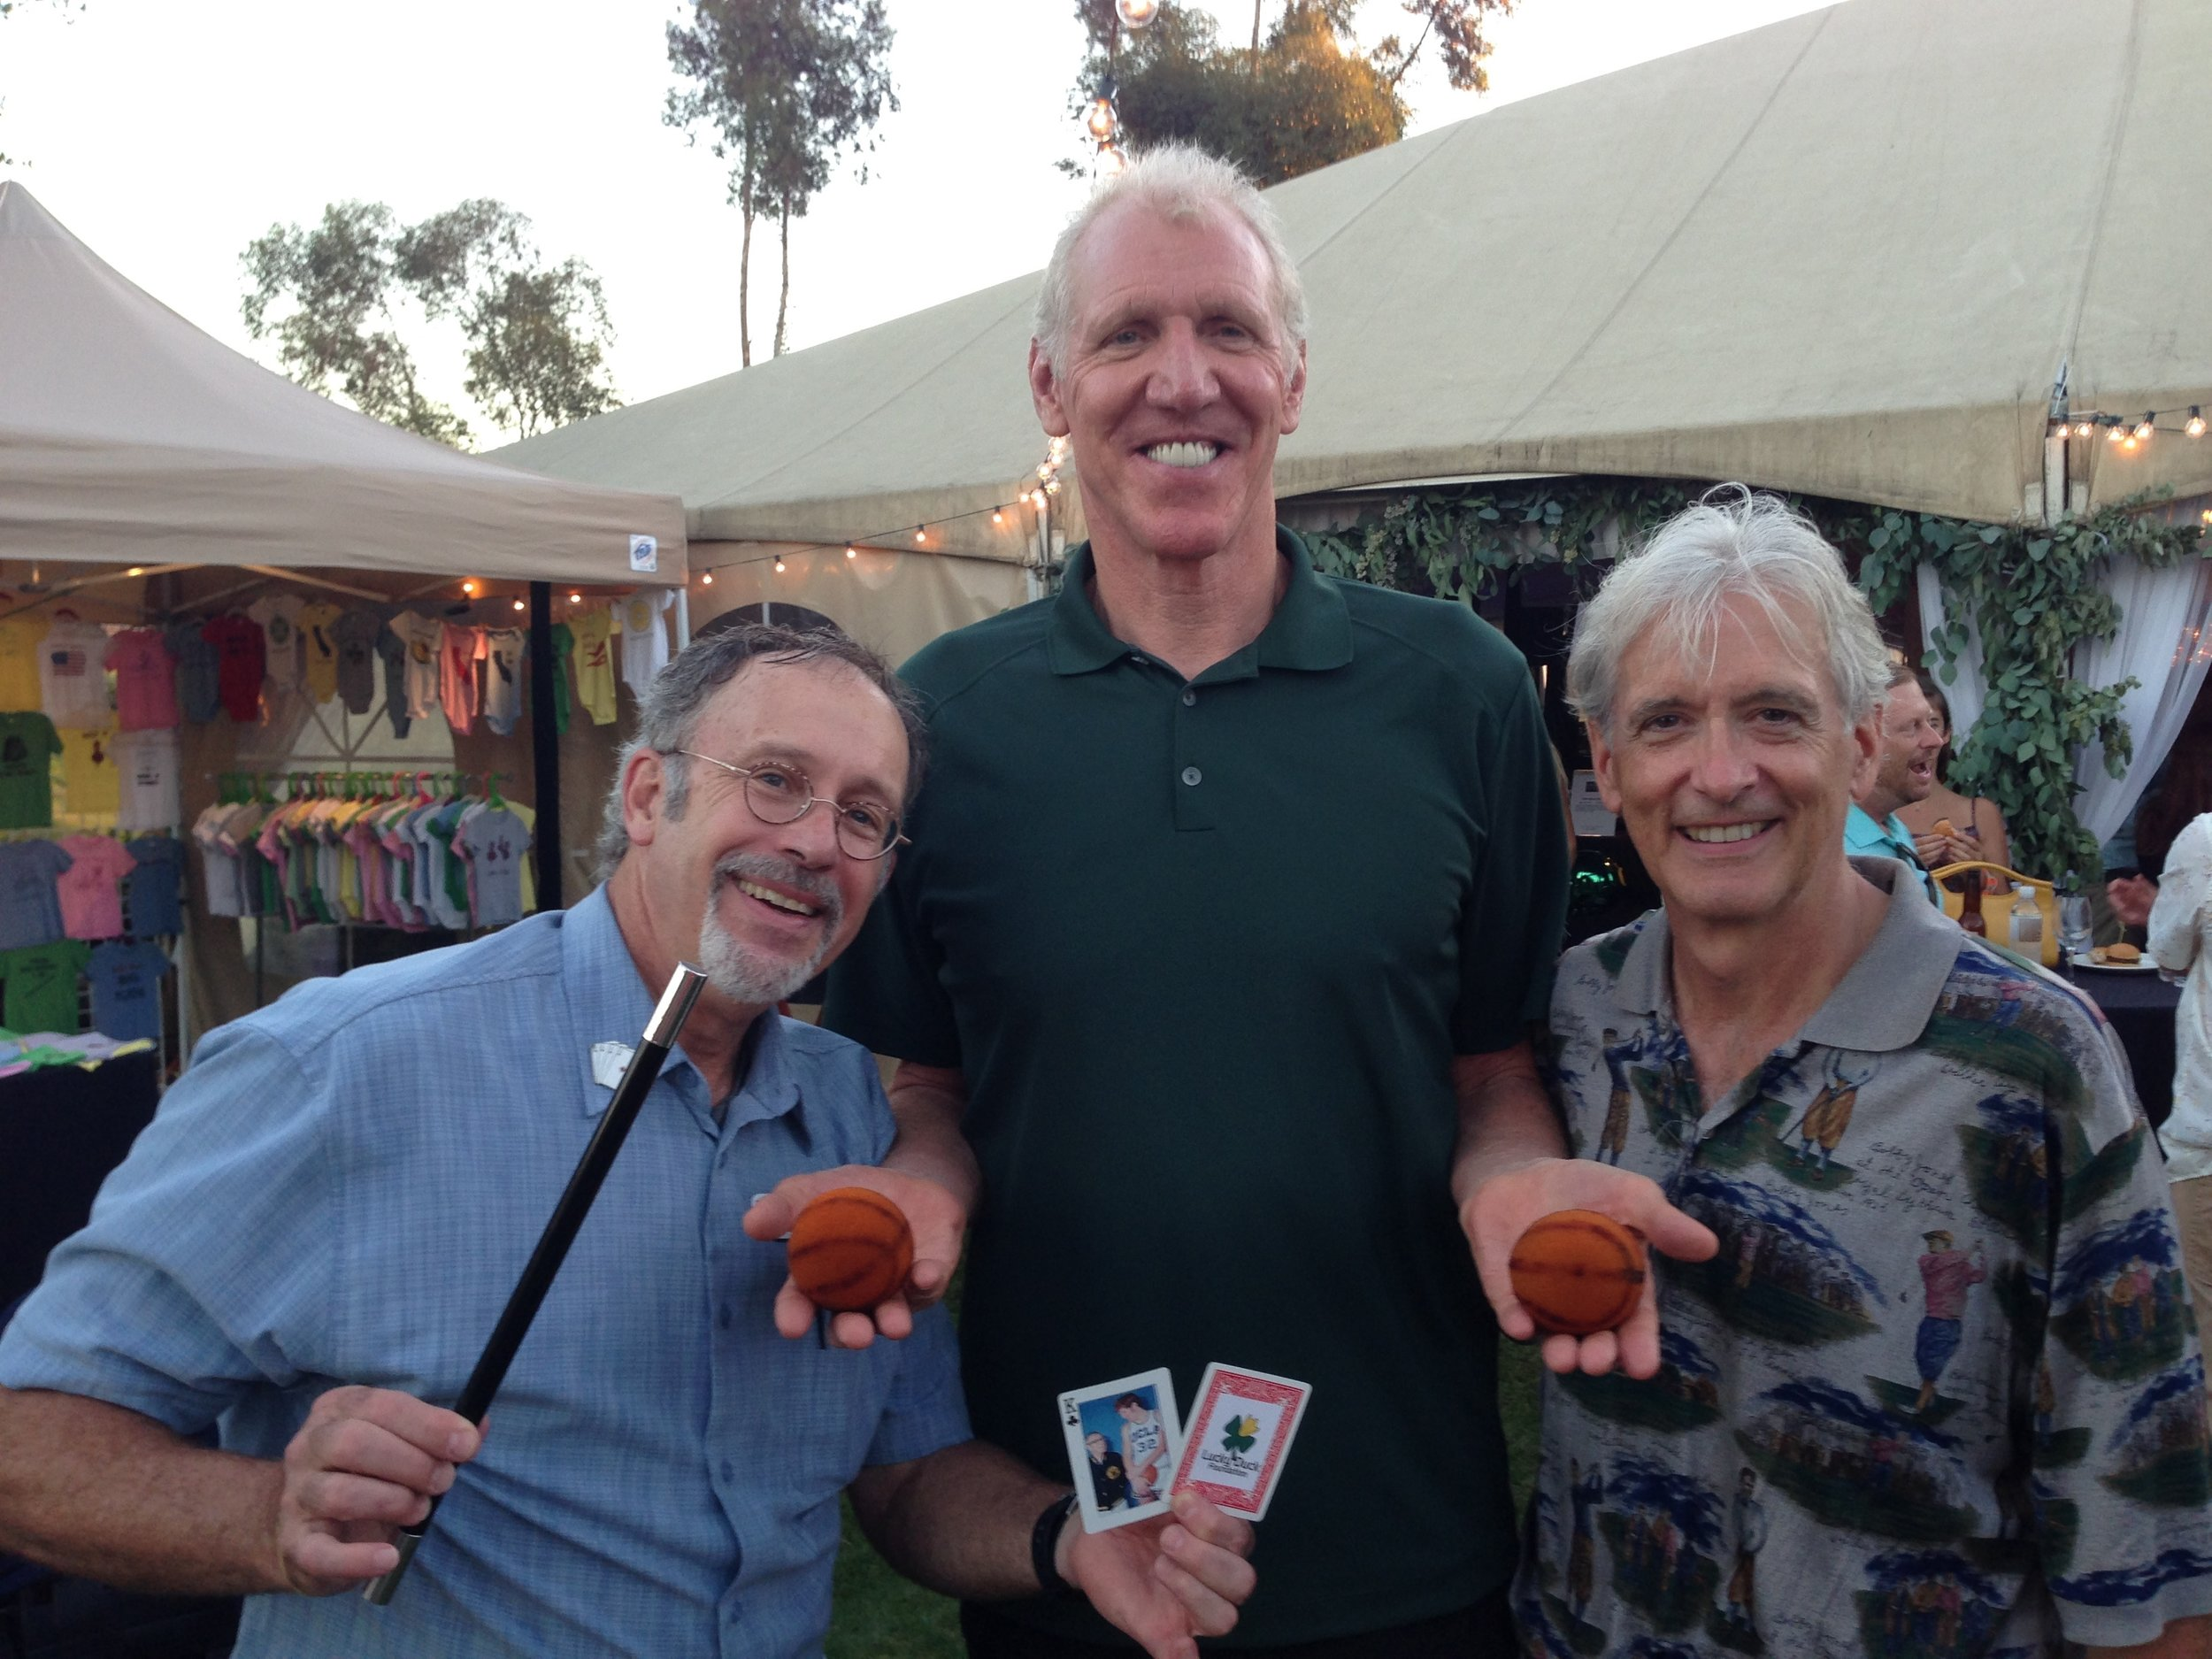 Hondo and friend Bill Fleischakker (the two short guys) with UCLA and NBA legend Bill Walton at the Lucky Duck Foundation golf benefit in Rancho Santa Fe, CA. Hondo kicked off the live auction with a stage show. Earlier he entertained the guests with his strolling close-up sleight-of-hand magic.